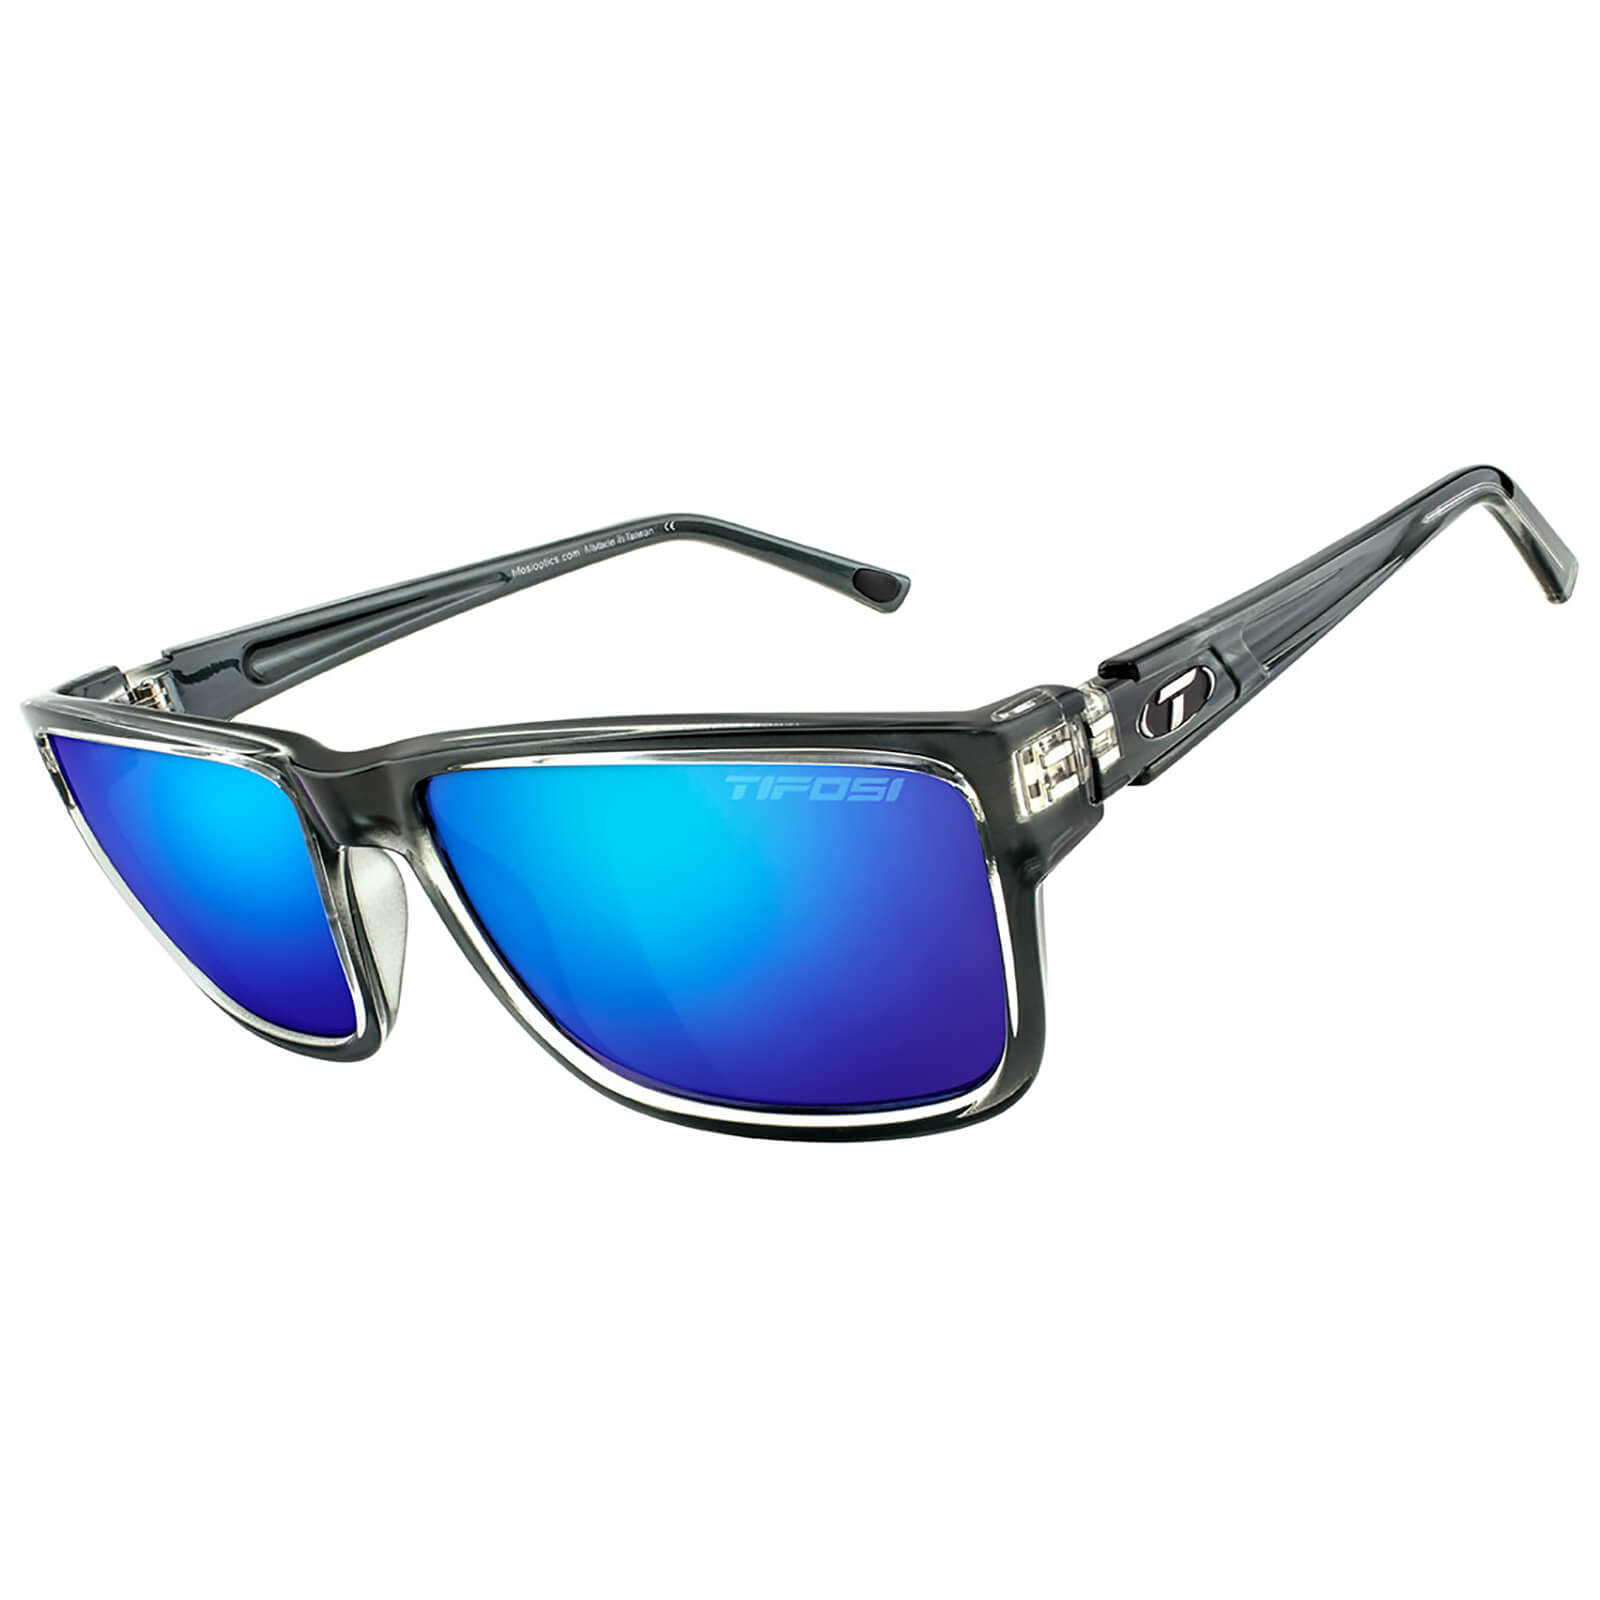 Tifosi Hagen XL Sunglasses - Crystal Smoke/Bright Blue